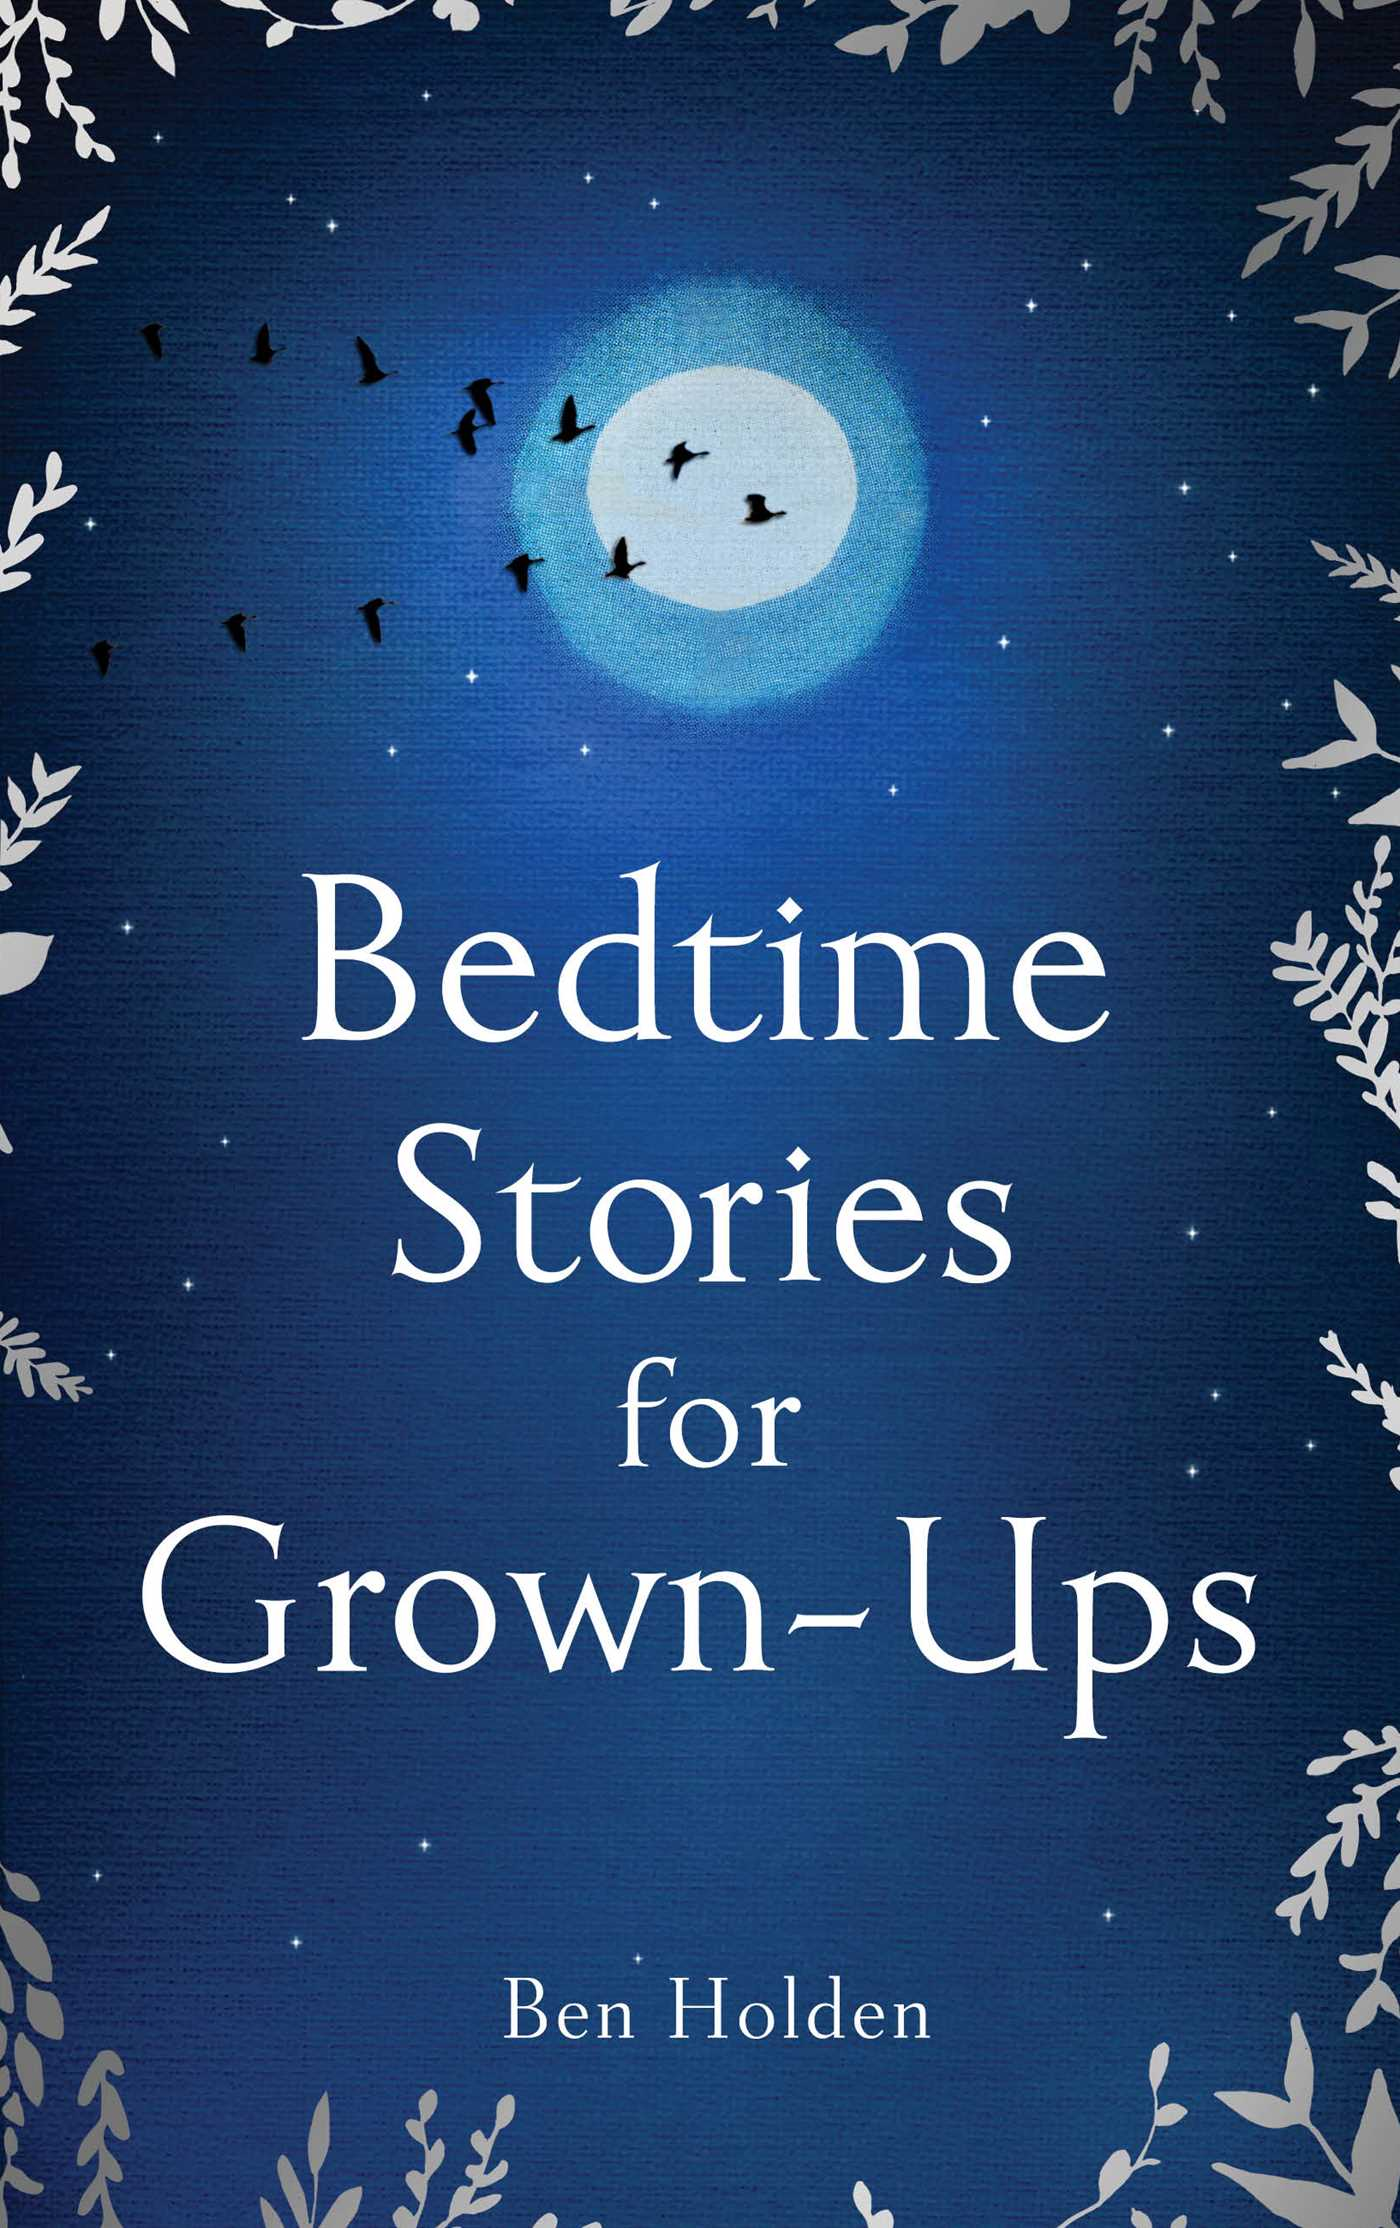 Bedtime stories for grown ups 9781471153785 hr